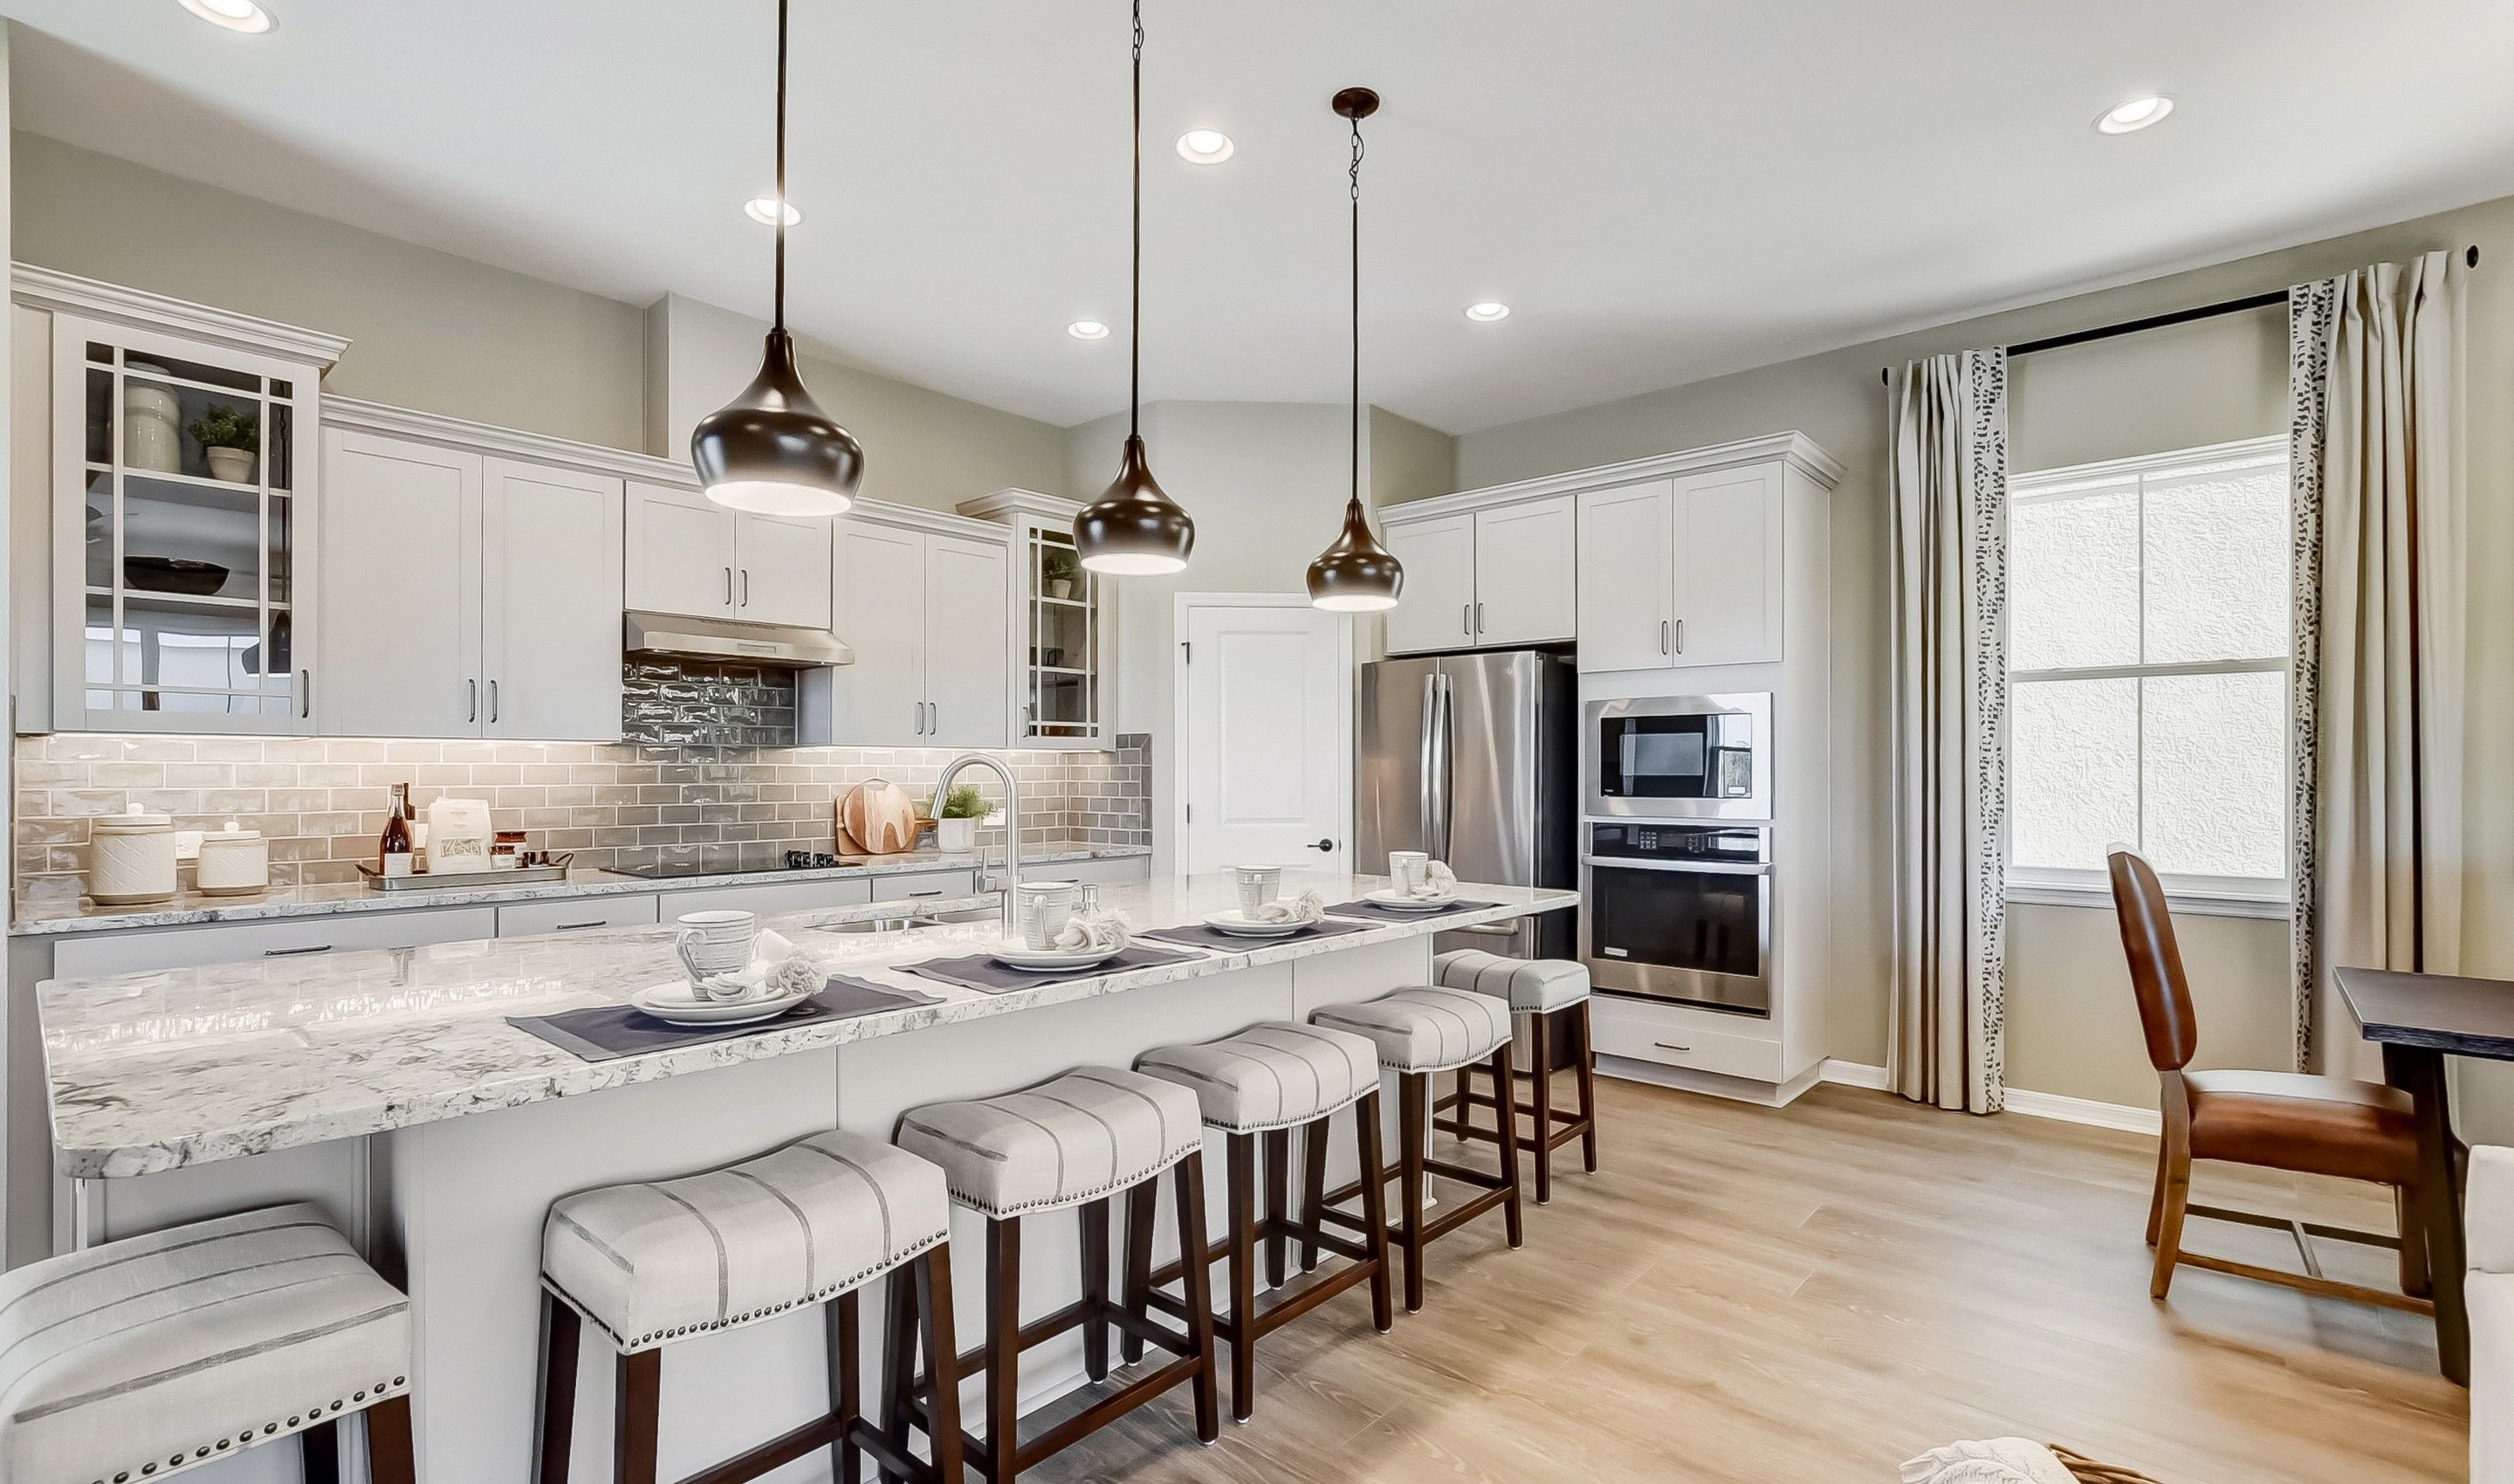 Kitchen featured in the Tessa By K. Hovnanian® Homes in Daytona Beach, FL